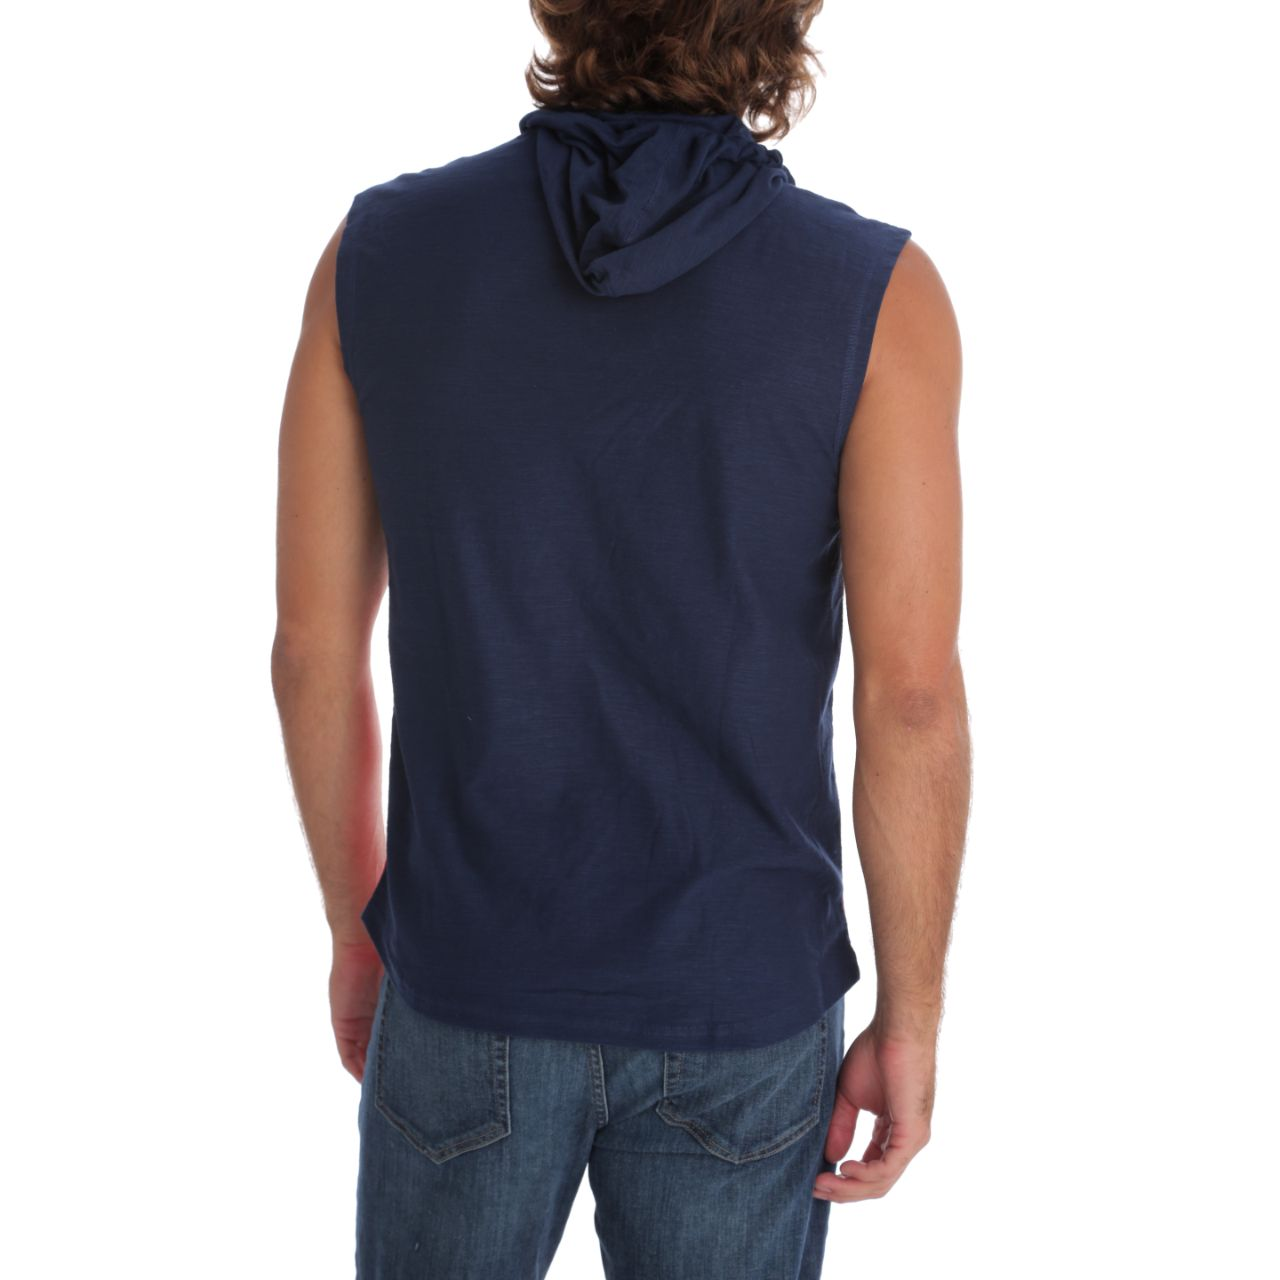 Clay Hooded Muscle Tank